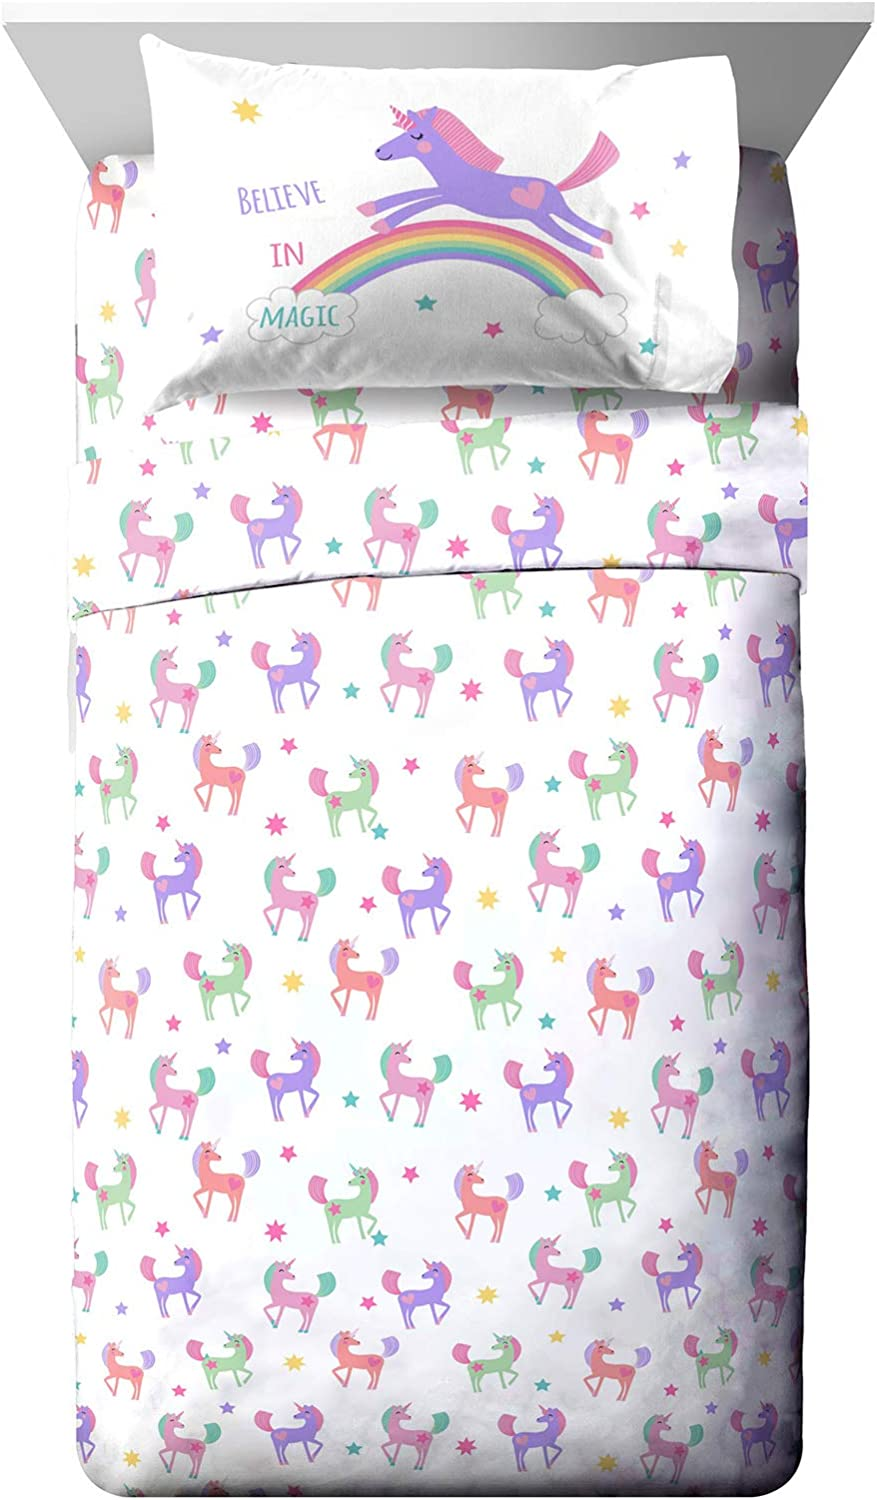 Genuine Free Shipping Max 66% OFF Jay Franco Trend Collector Believe Full - Piece 4 Sheet Set